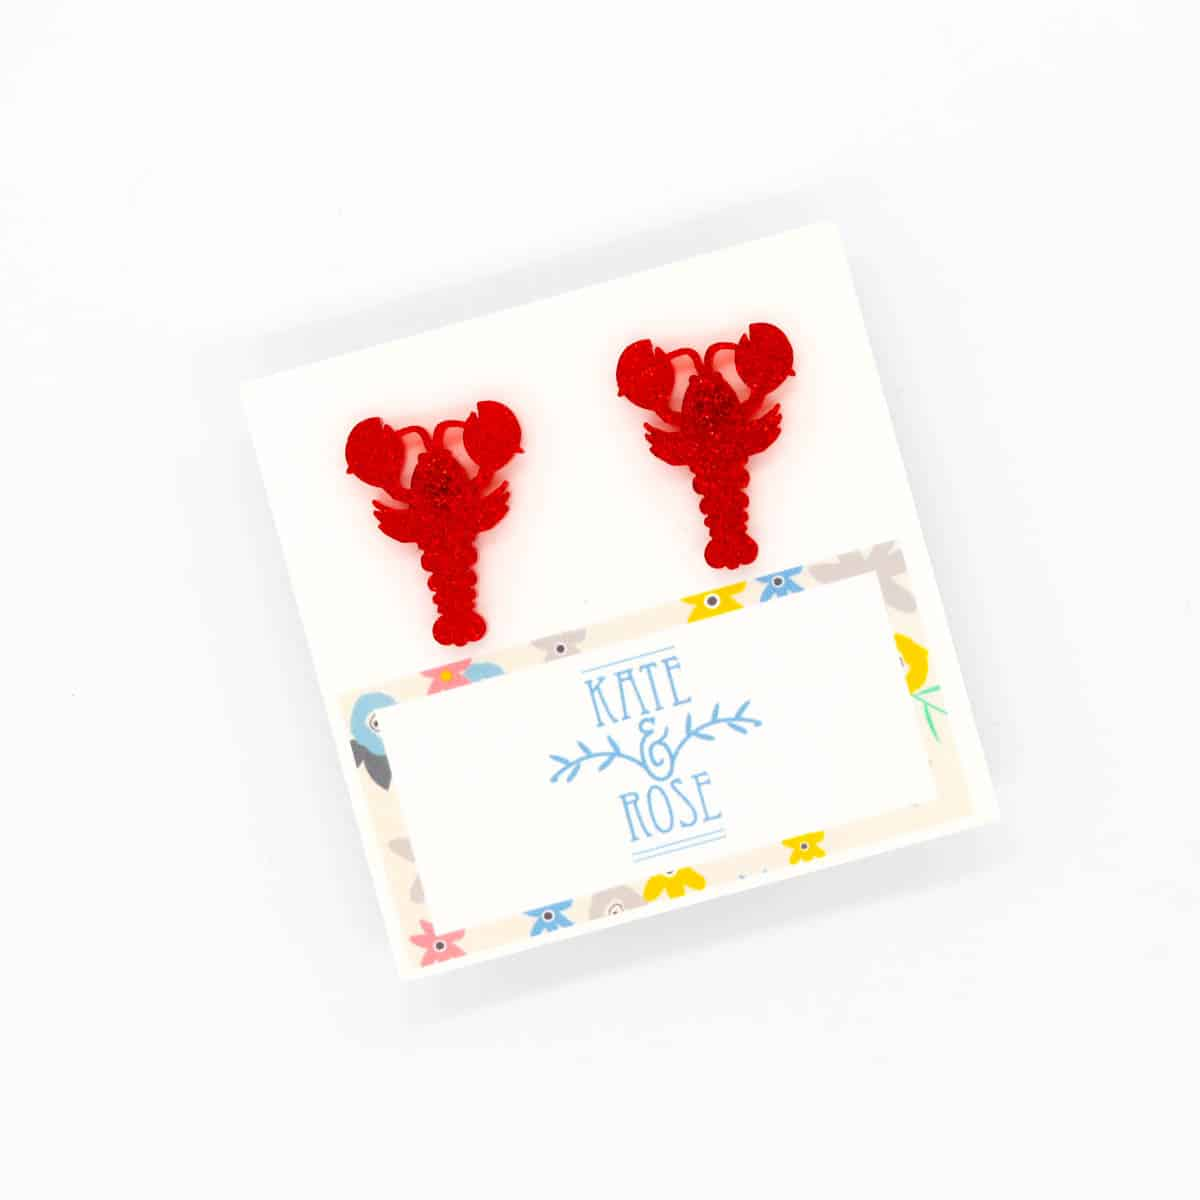 Small Lobster Earrings By Kate And Rose $16.95